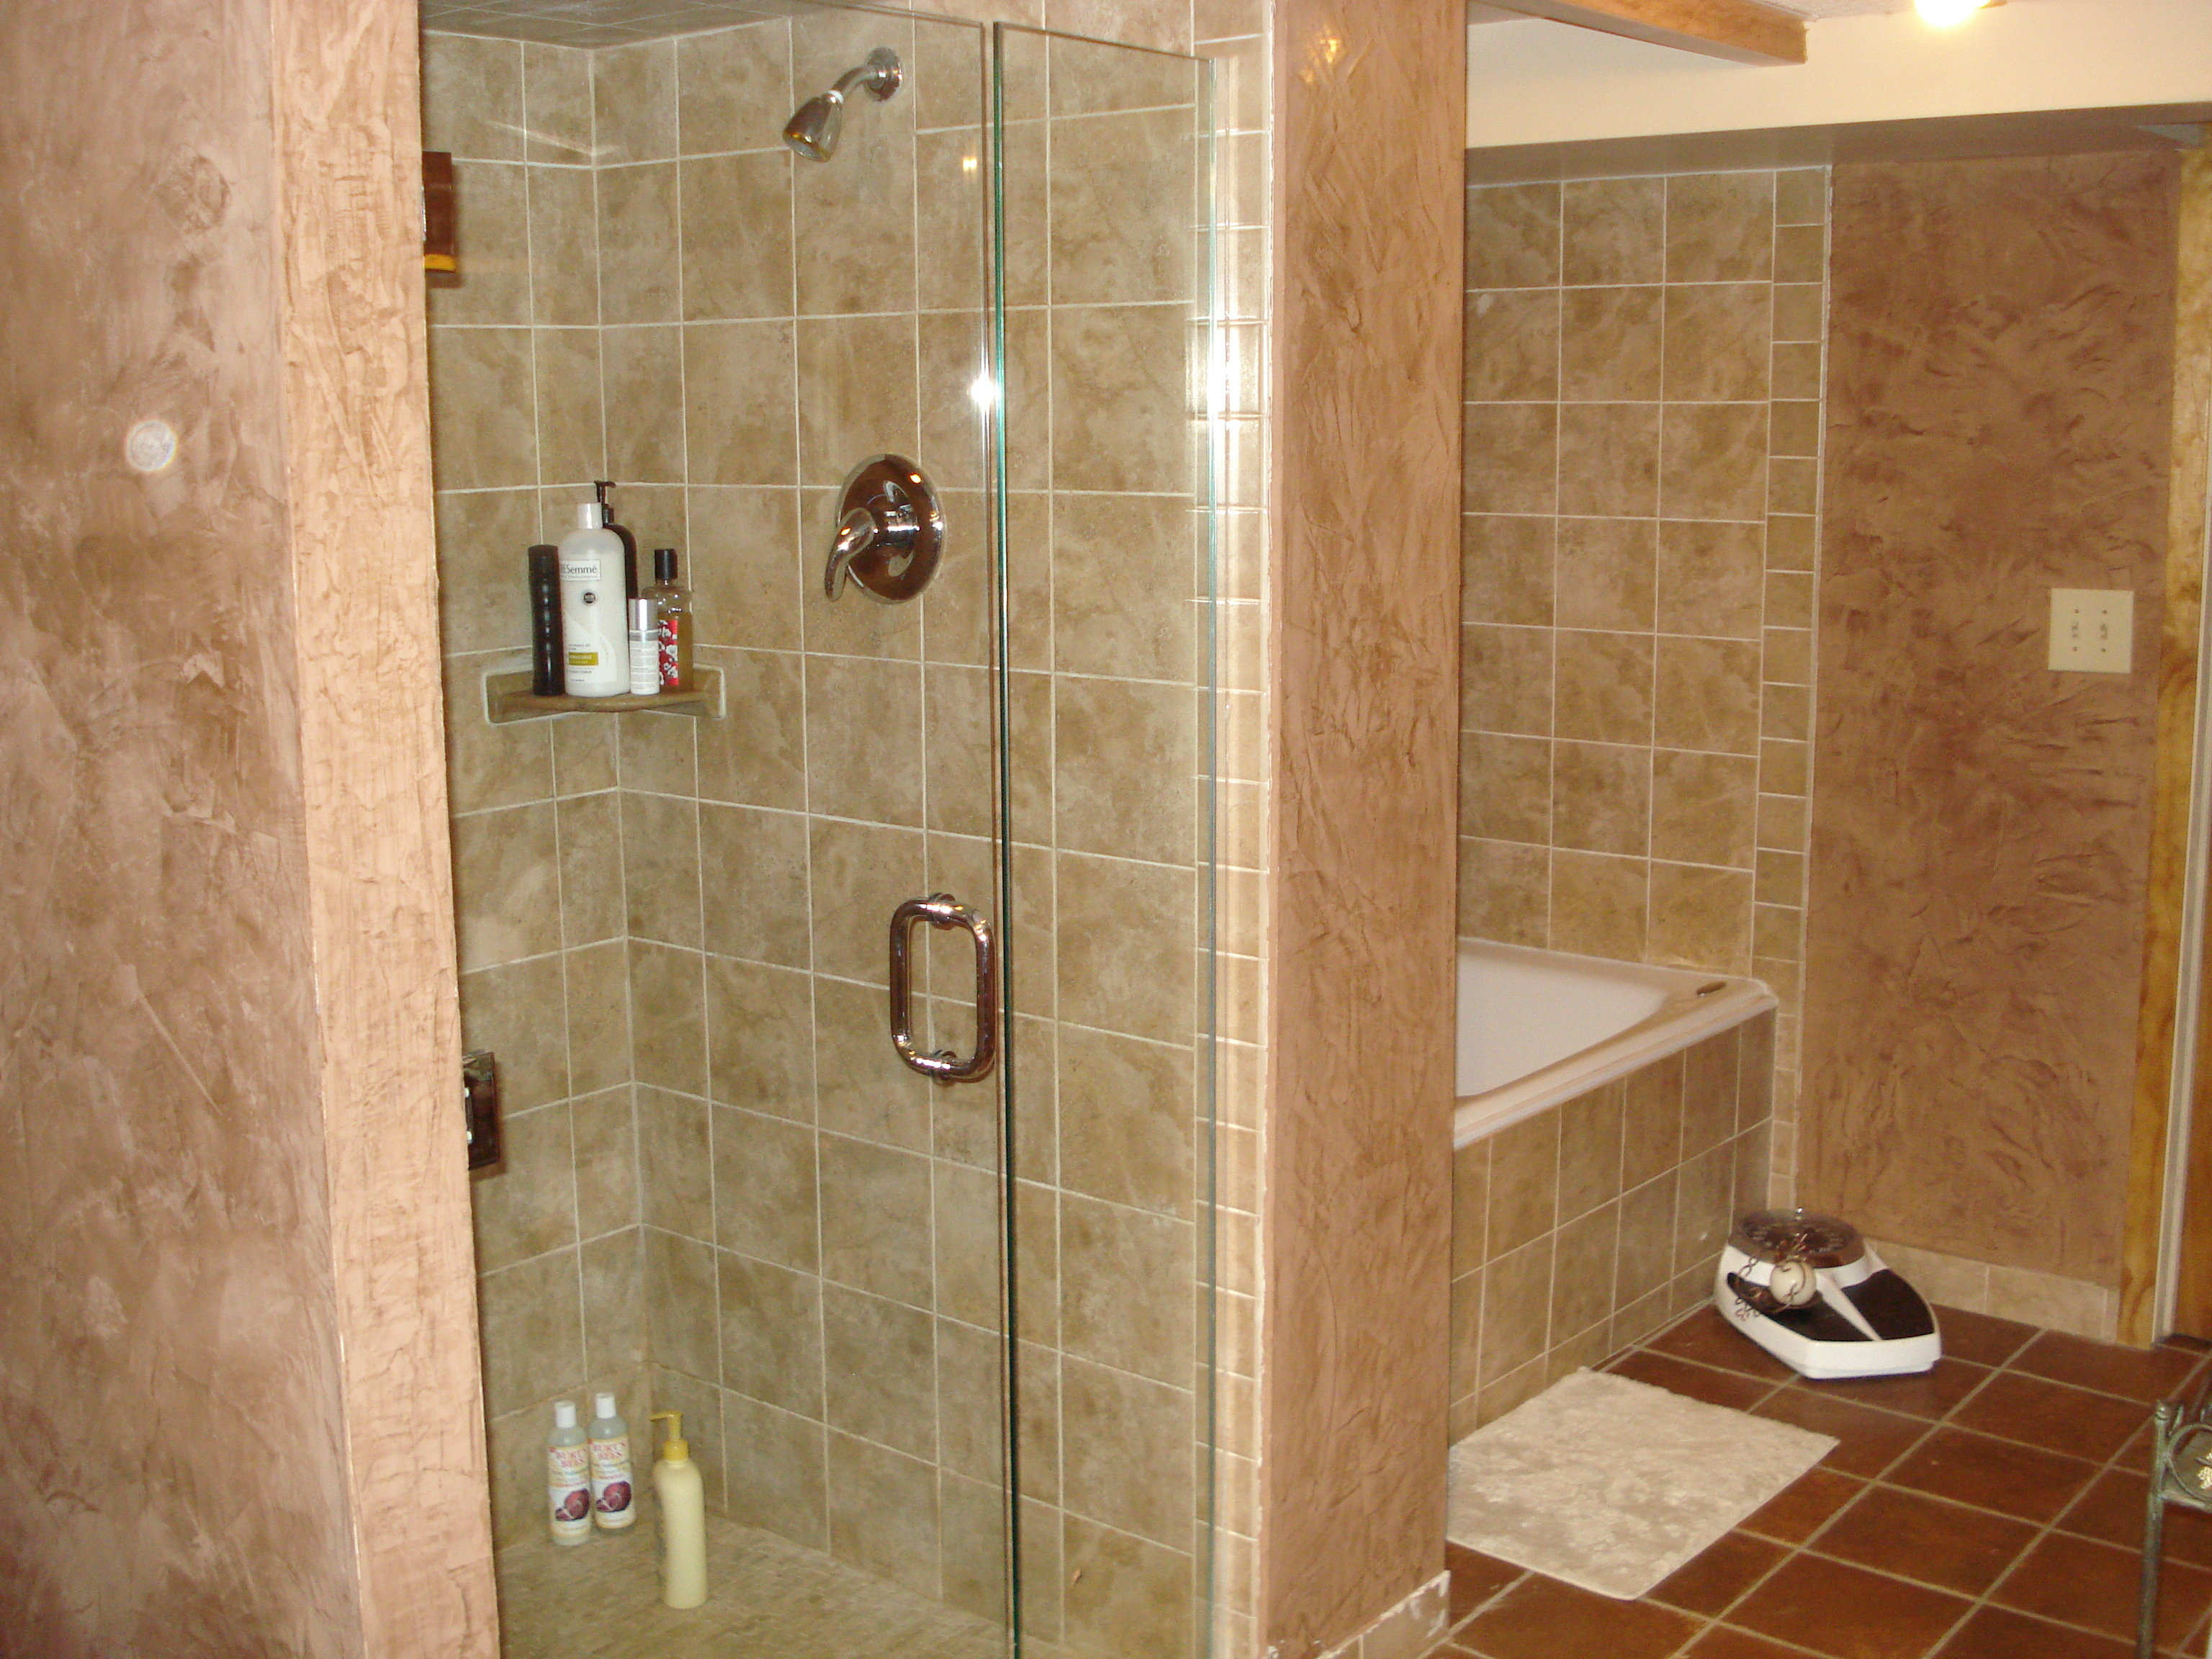 Venetian plaster finish in bathroom for Finished bathroom ideas